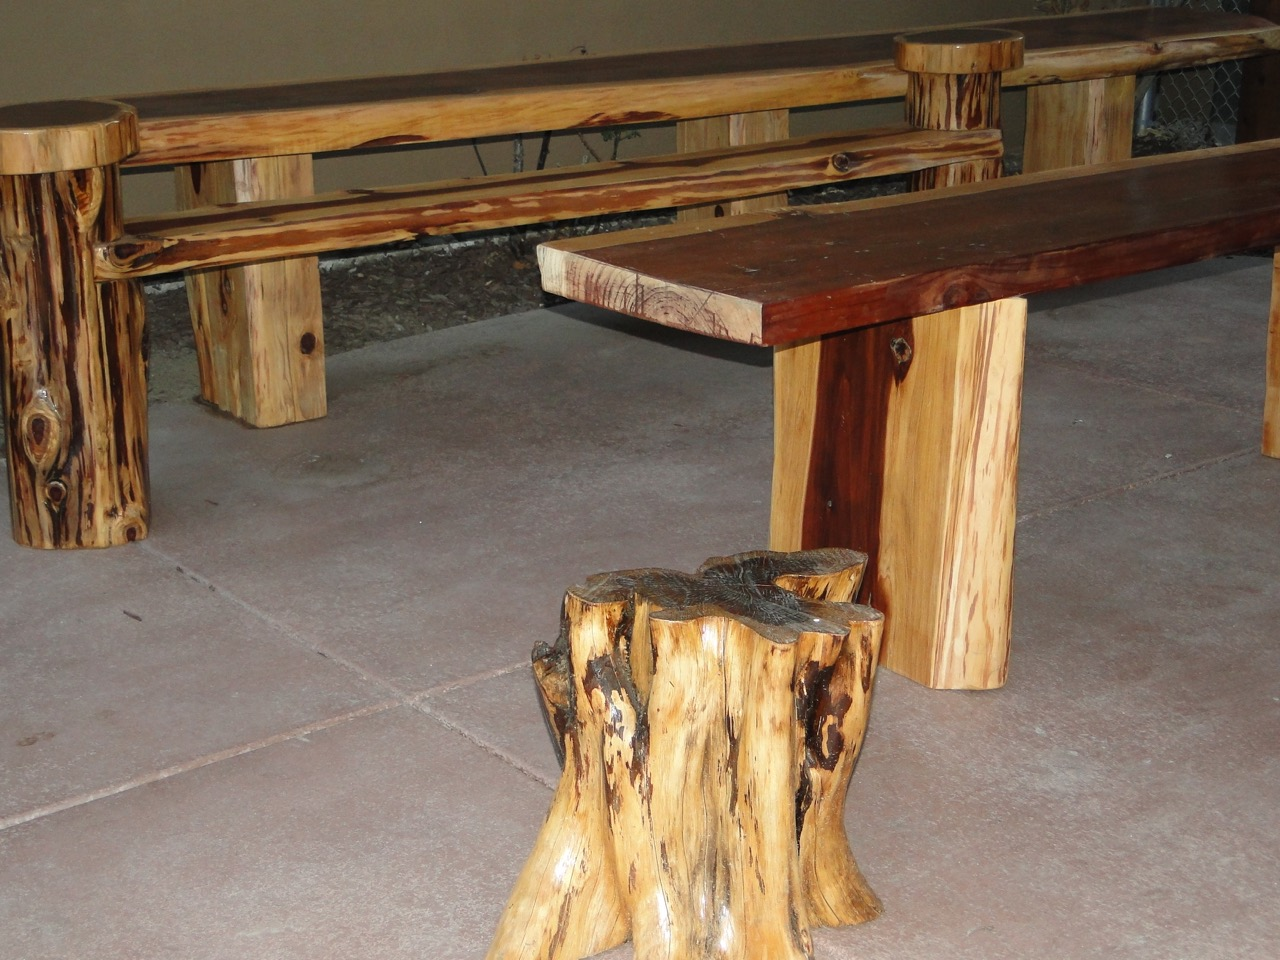 A1 Stump Reclaimed Furniture - 121